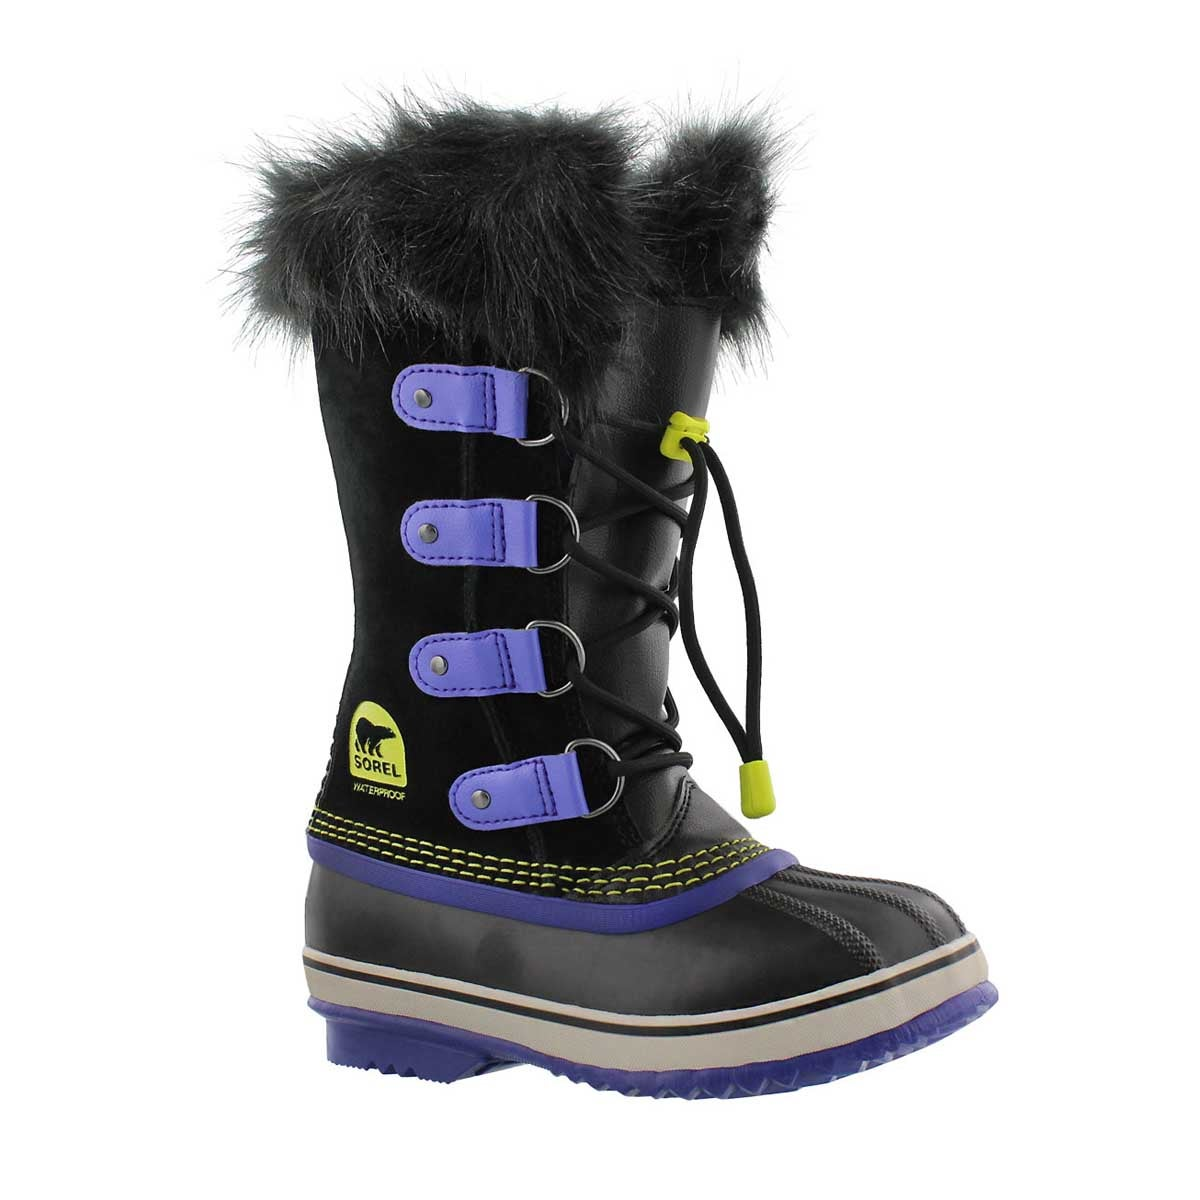 Girls' JOAN OF ARCTIC black/purple winter boots